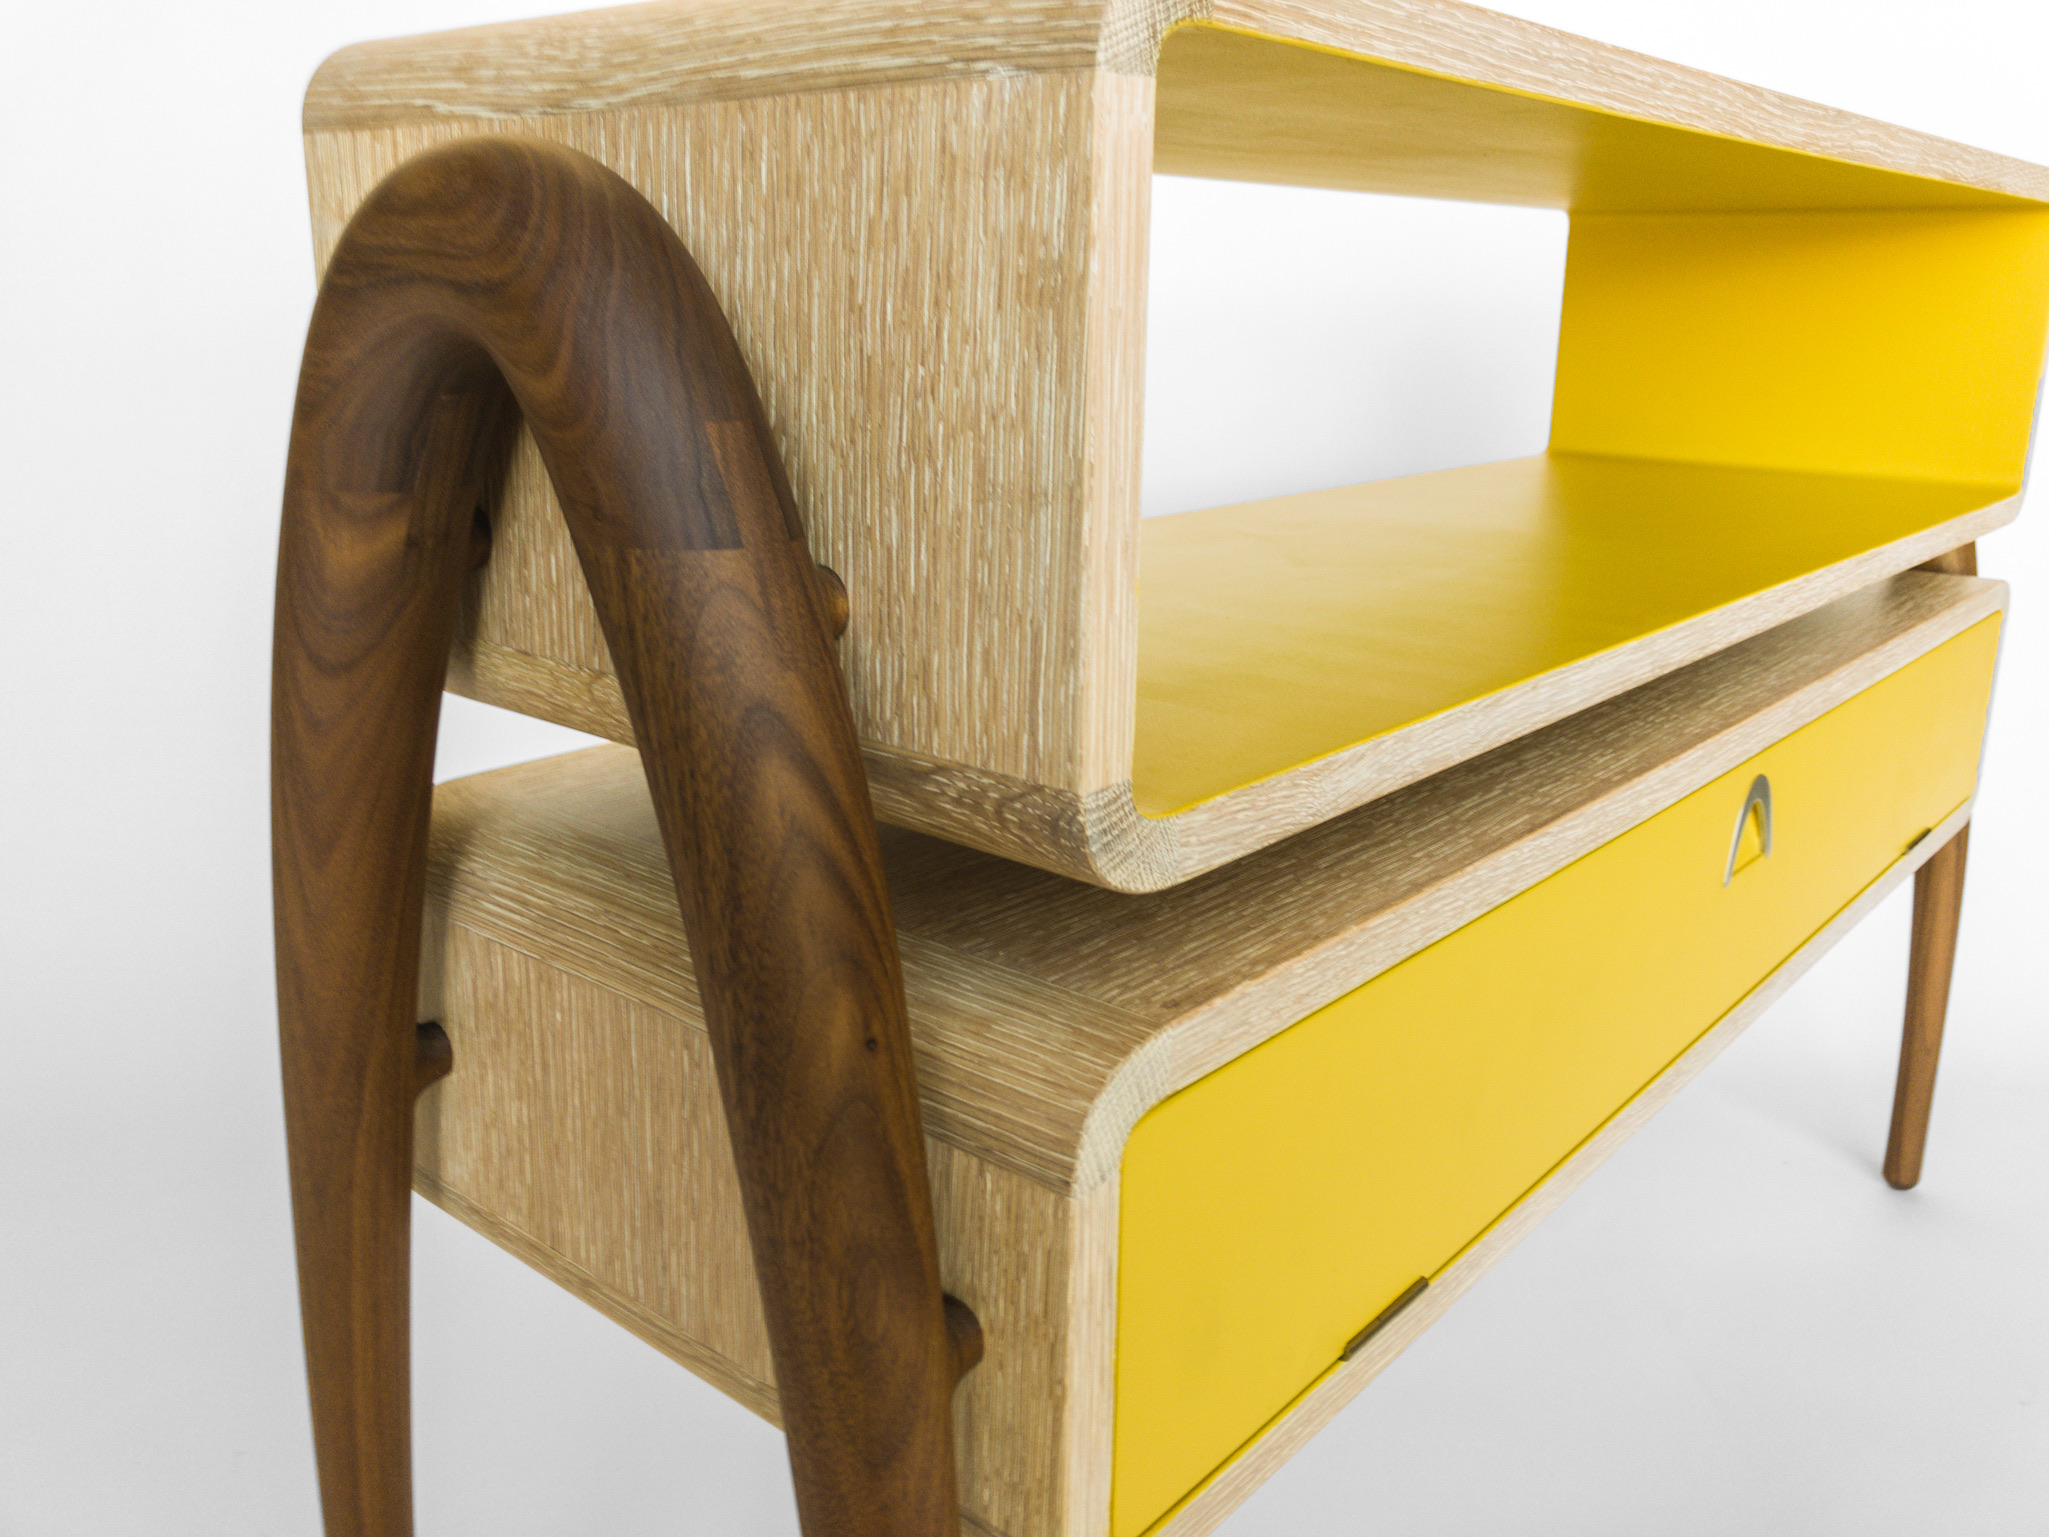 Console Table - Oak/walnut console table created for children's room in Vail residence. Client wanted something functional yet playful that could house baby monitor, reading materials, TV remotes, and a sculpture.In collaboration with Cecilia Tanoni | 2017